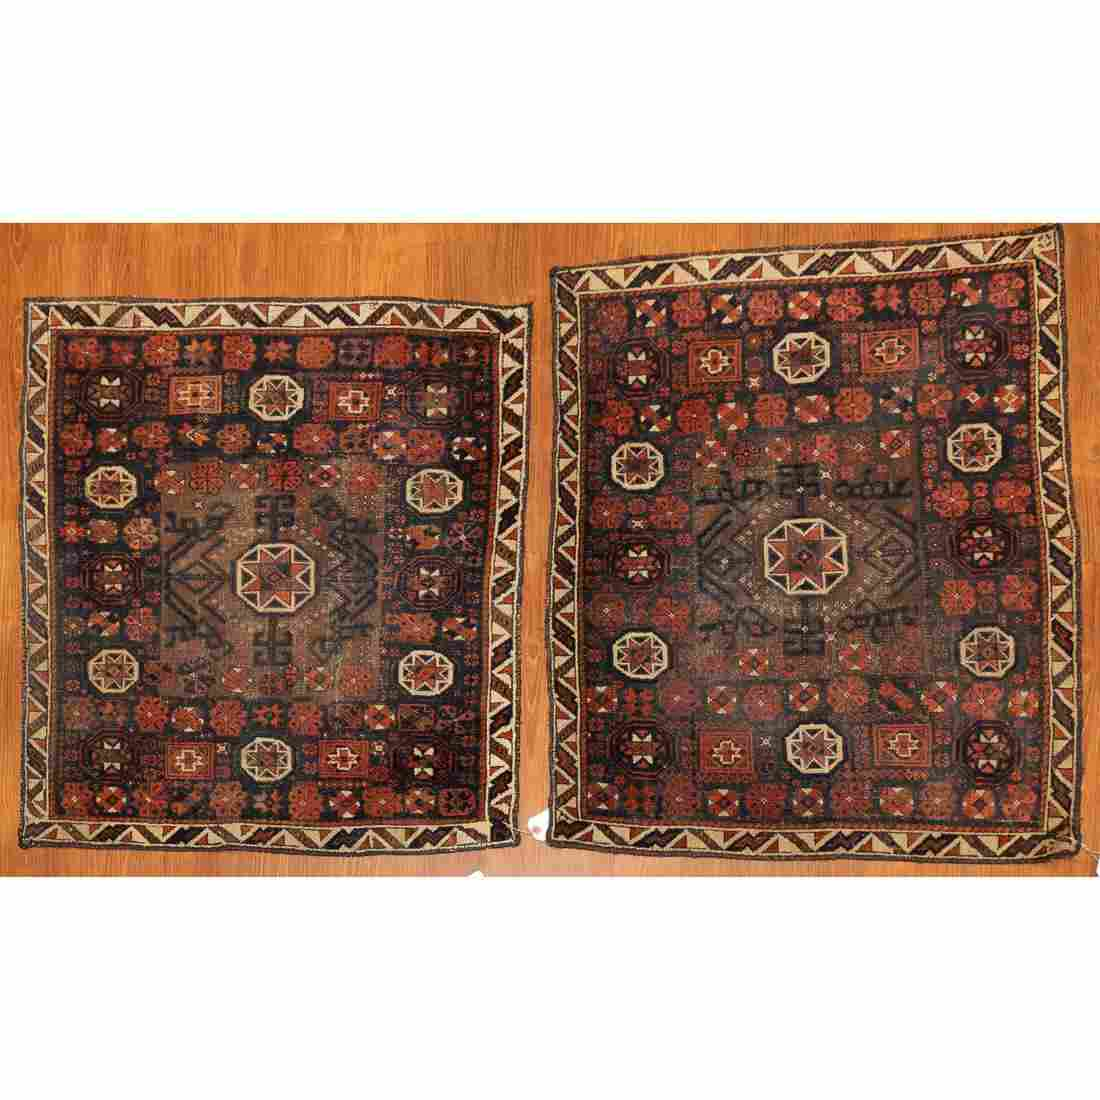 Pair Semi-Antique Belouch Tribal Rugs, 2.7 x 3.2